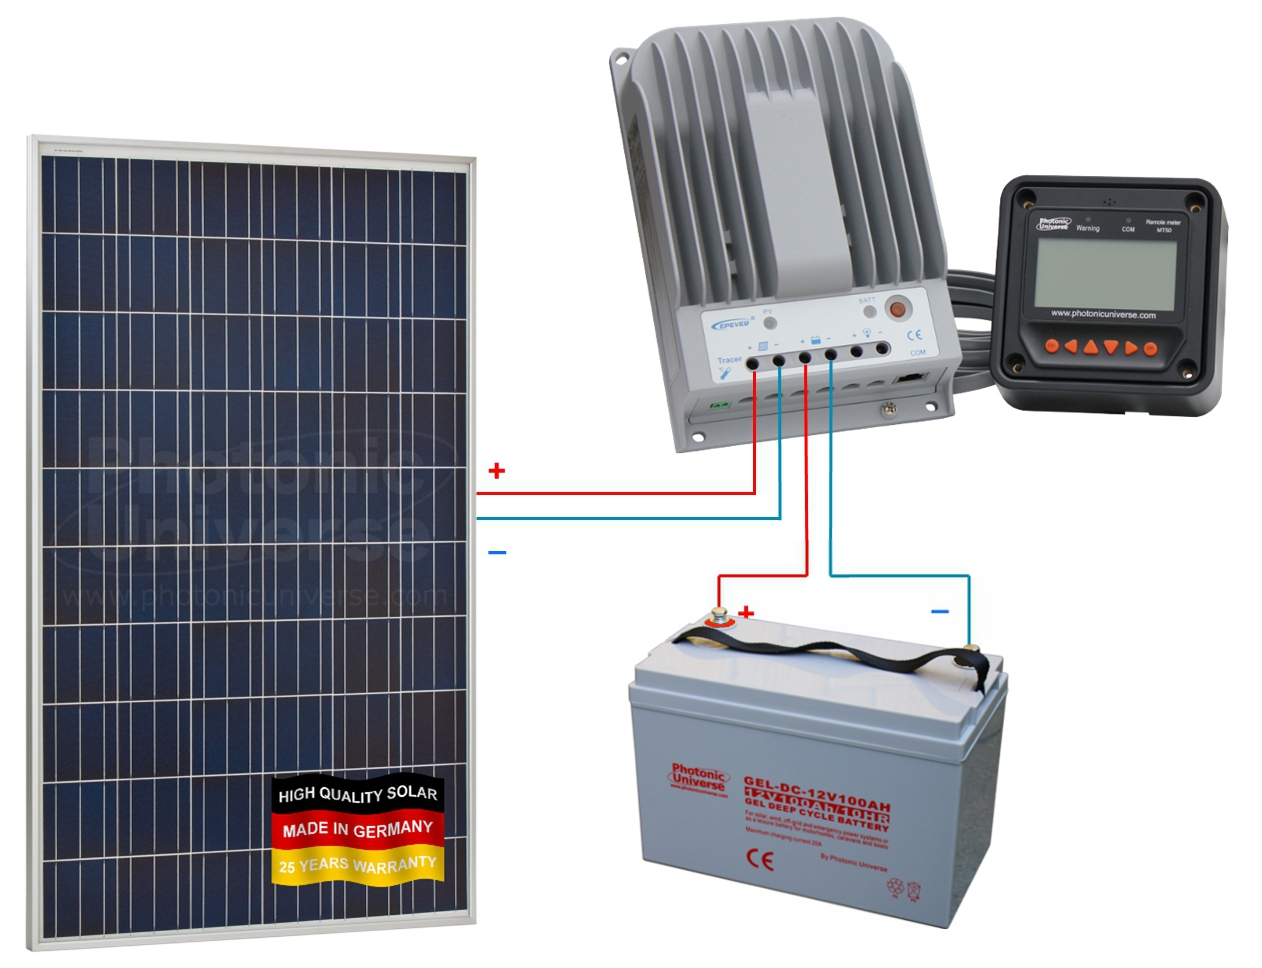 hight resolution of connection scheme for 275w 12v 24v photonic universe solar charging kit